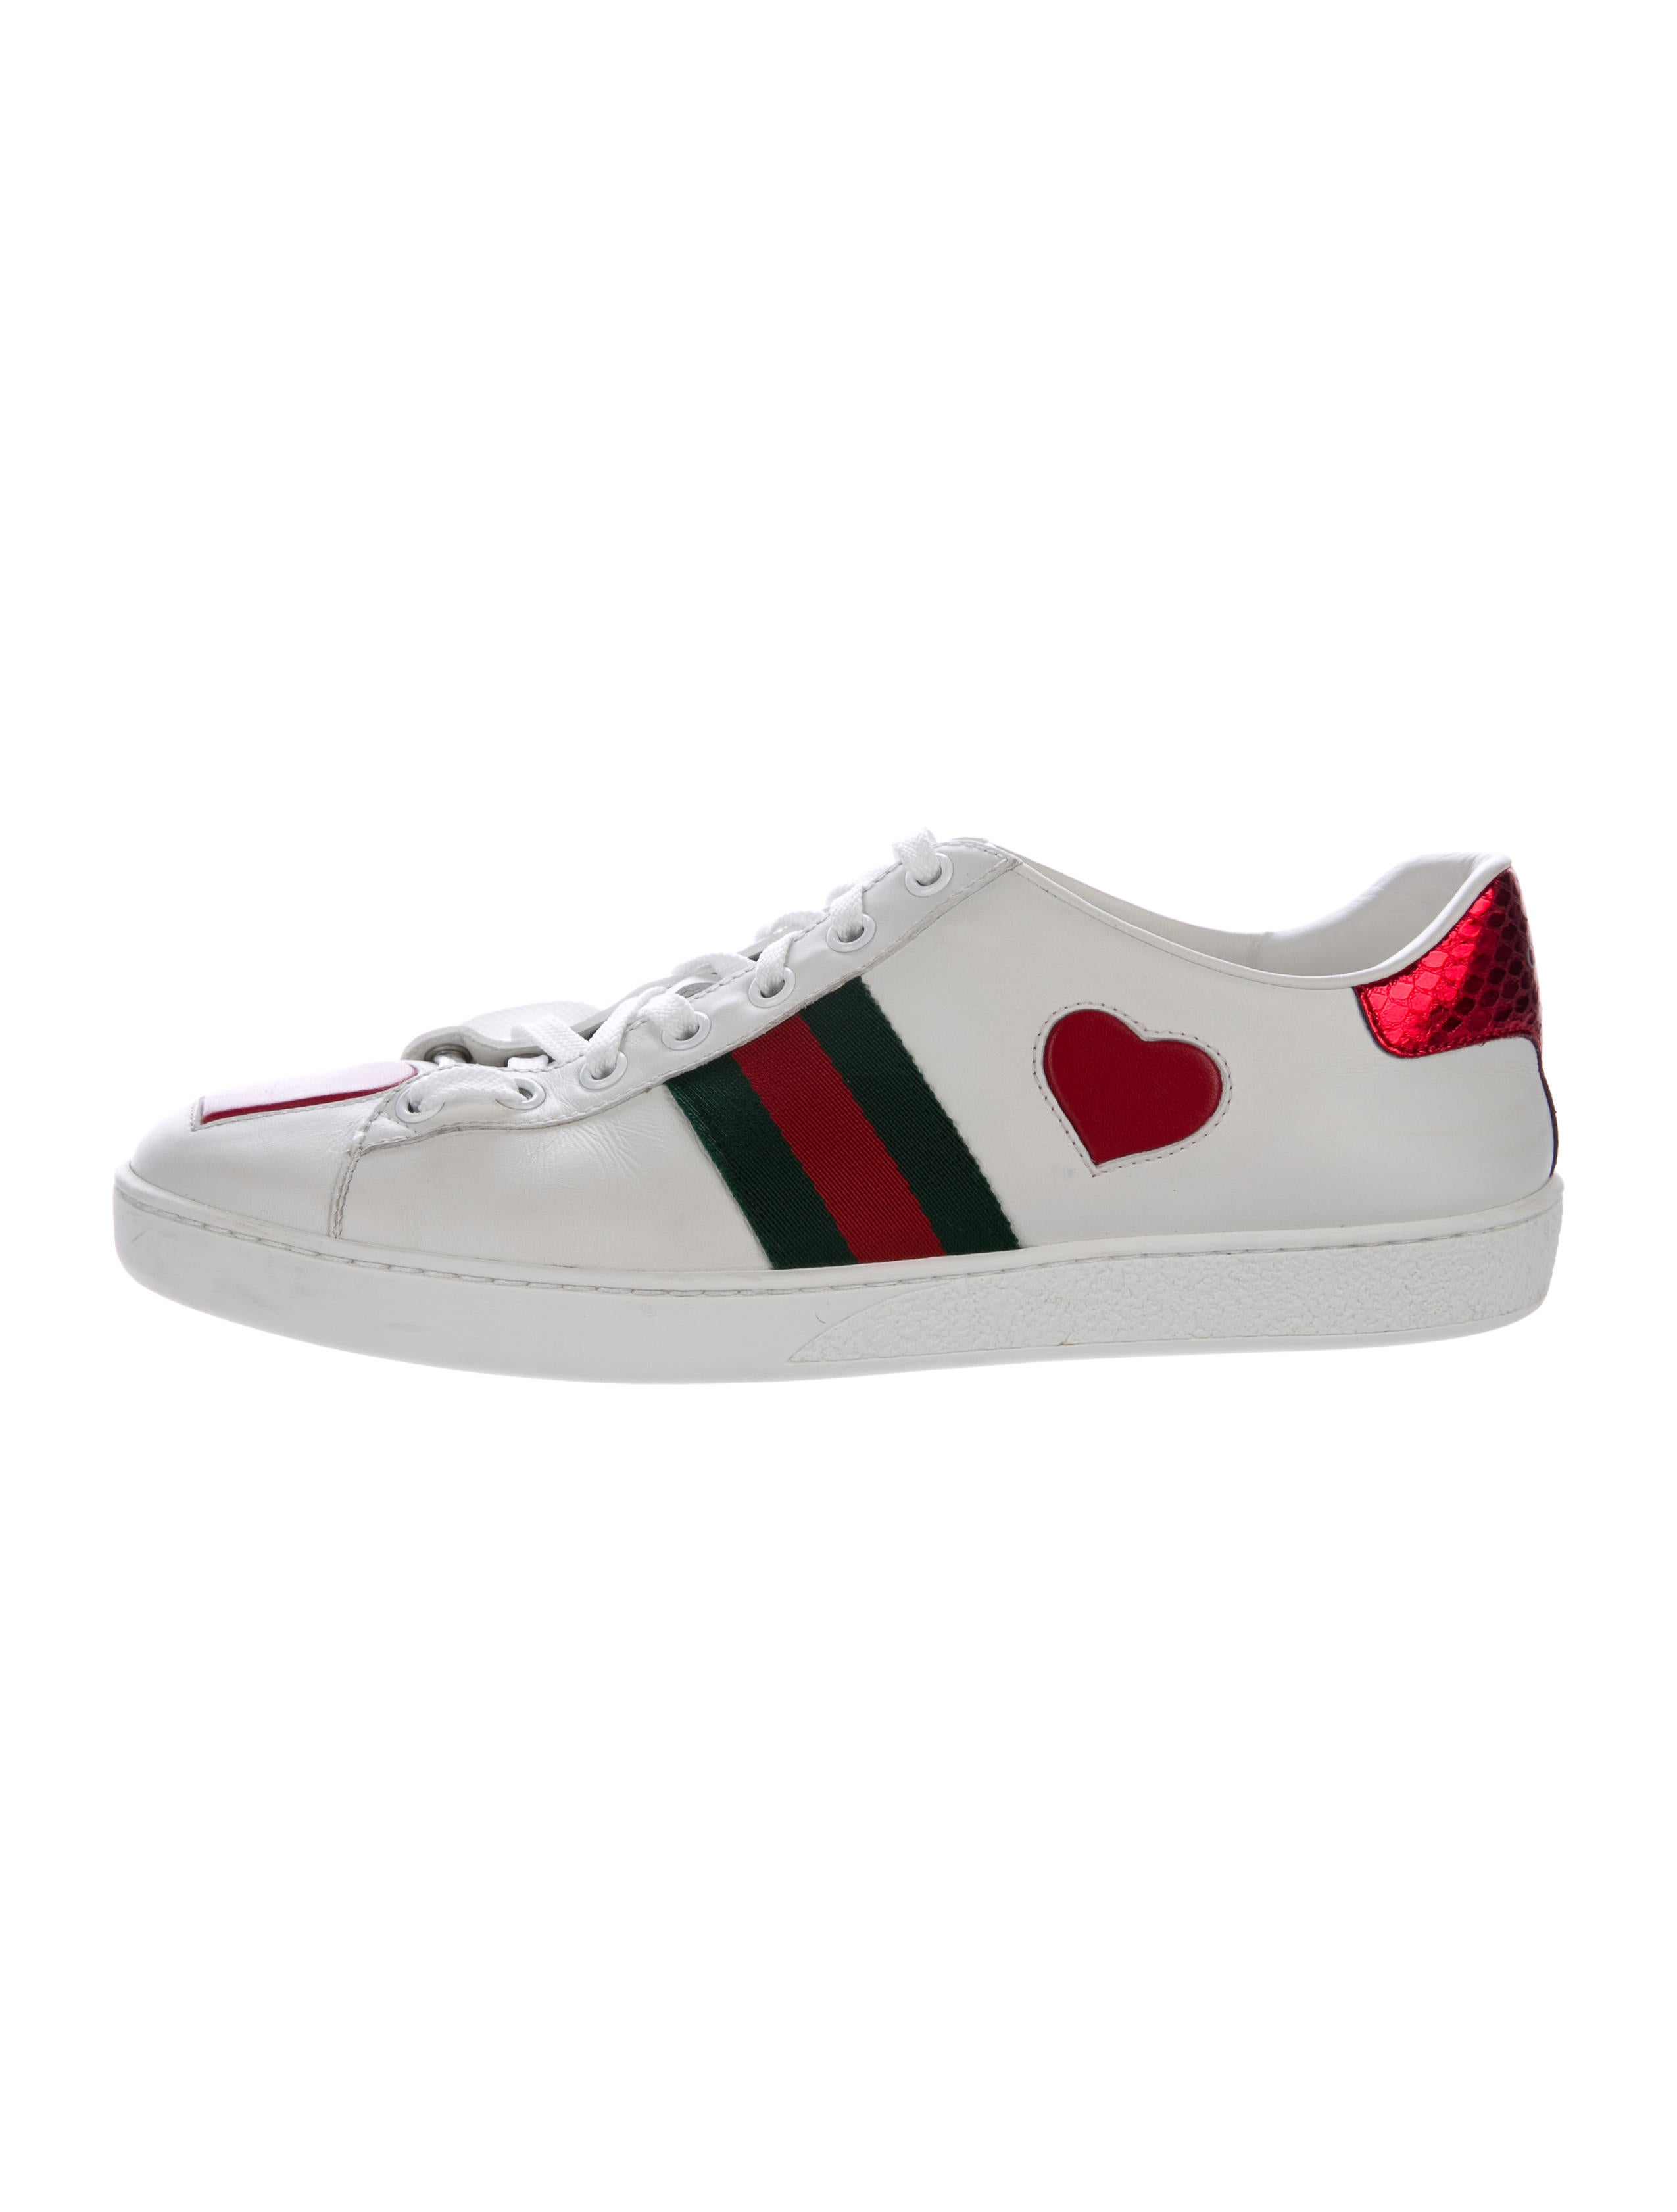 Gucci 2017 Ace Heart Sneakers Shoes Guc159825 The